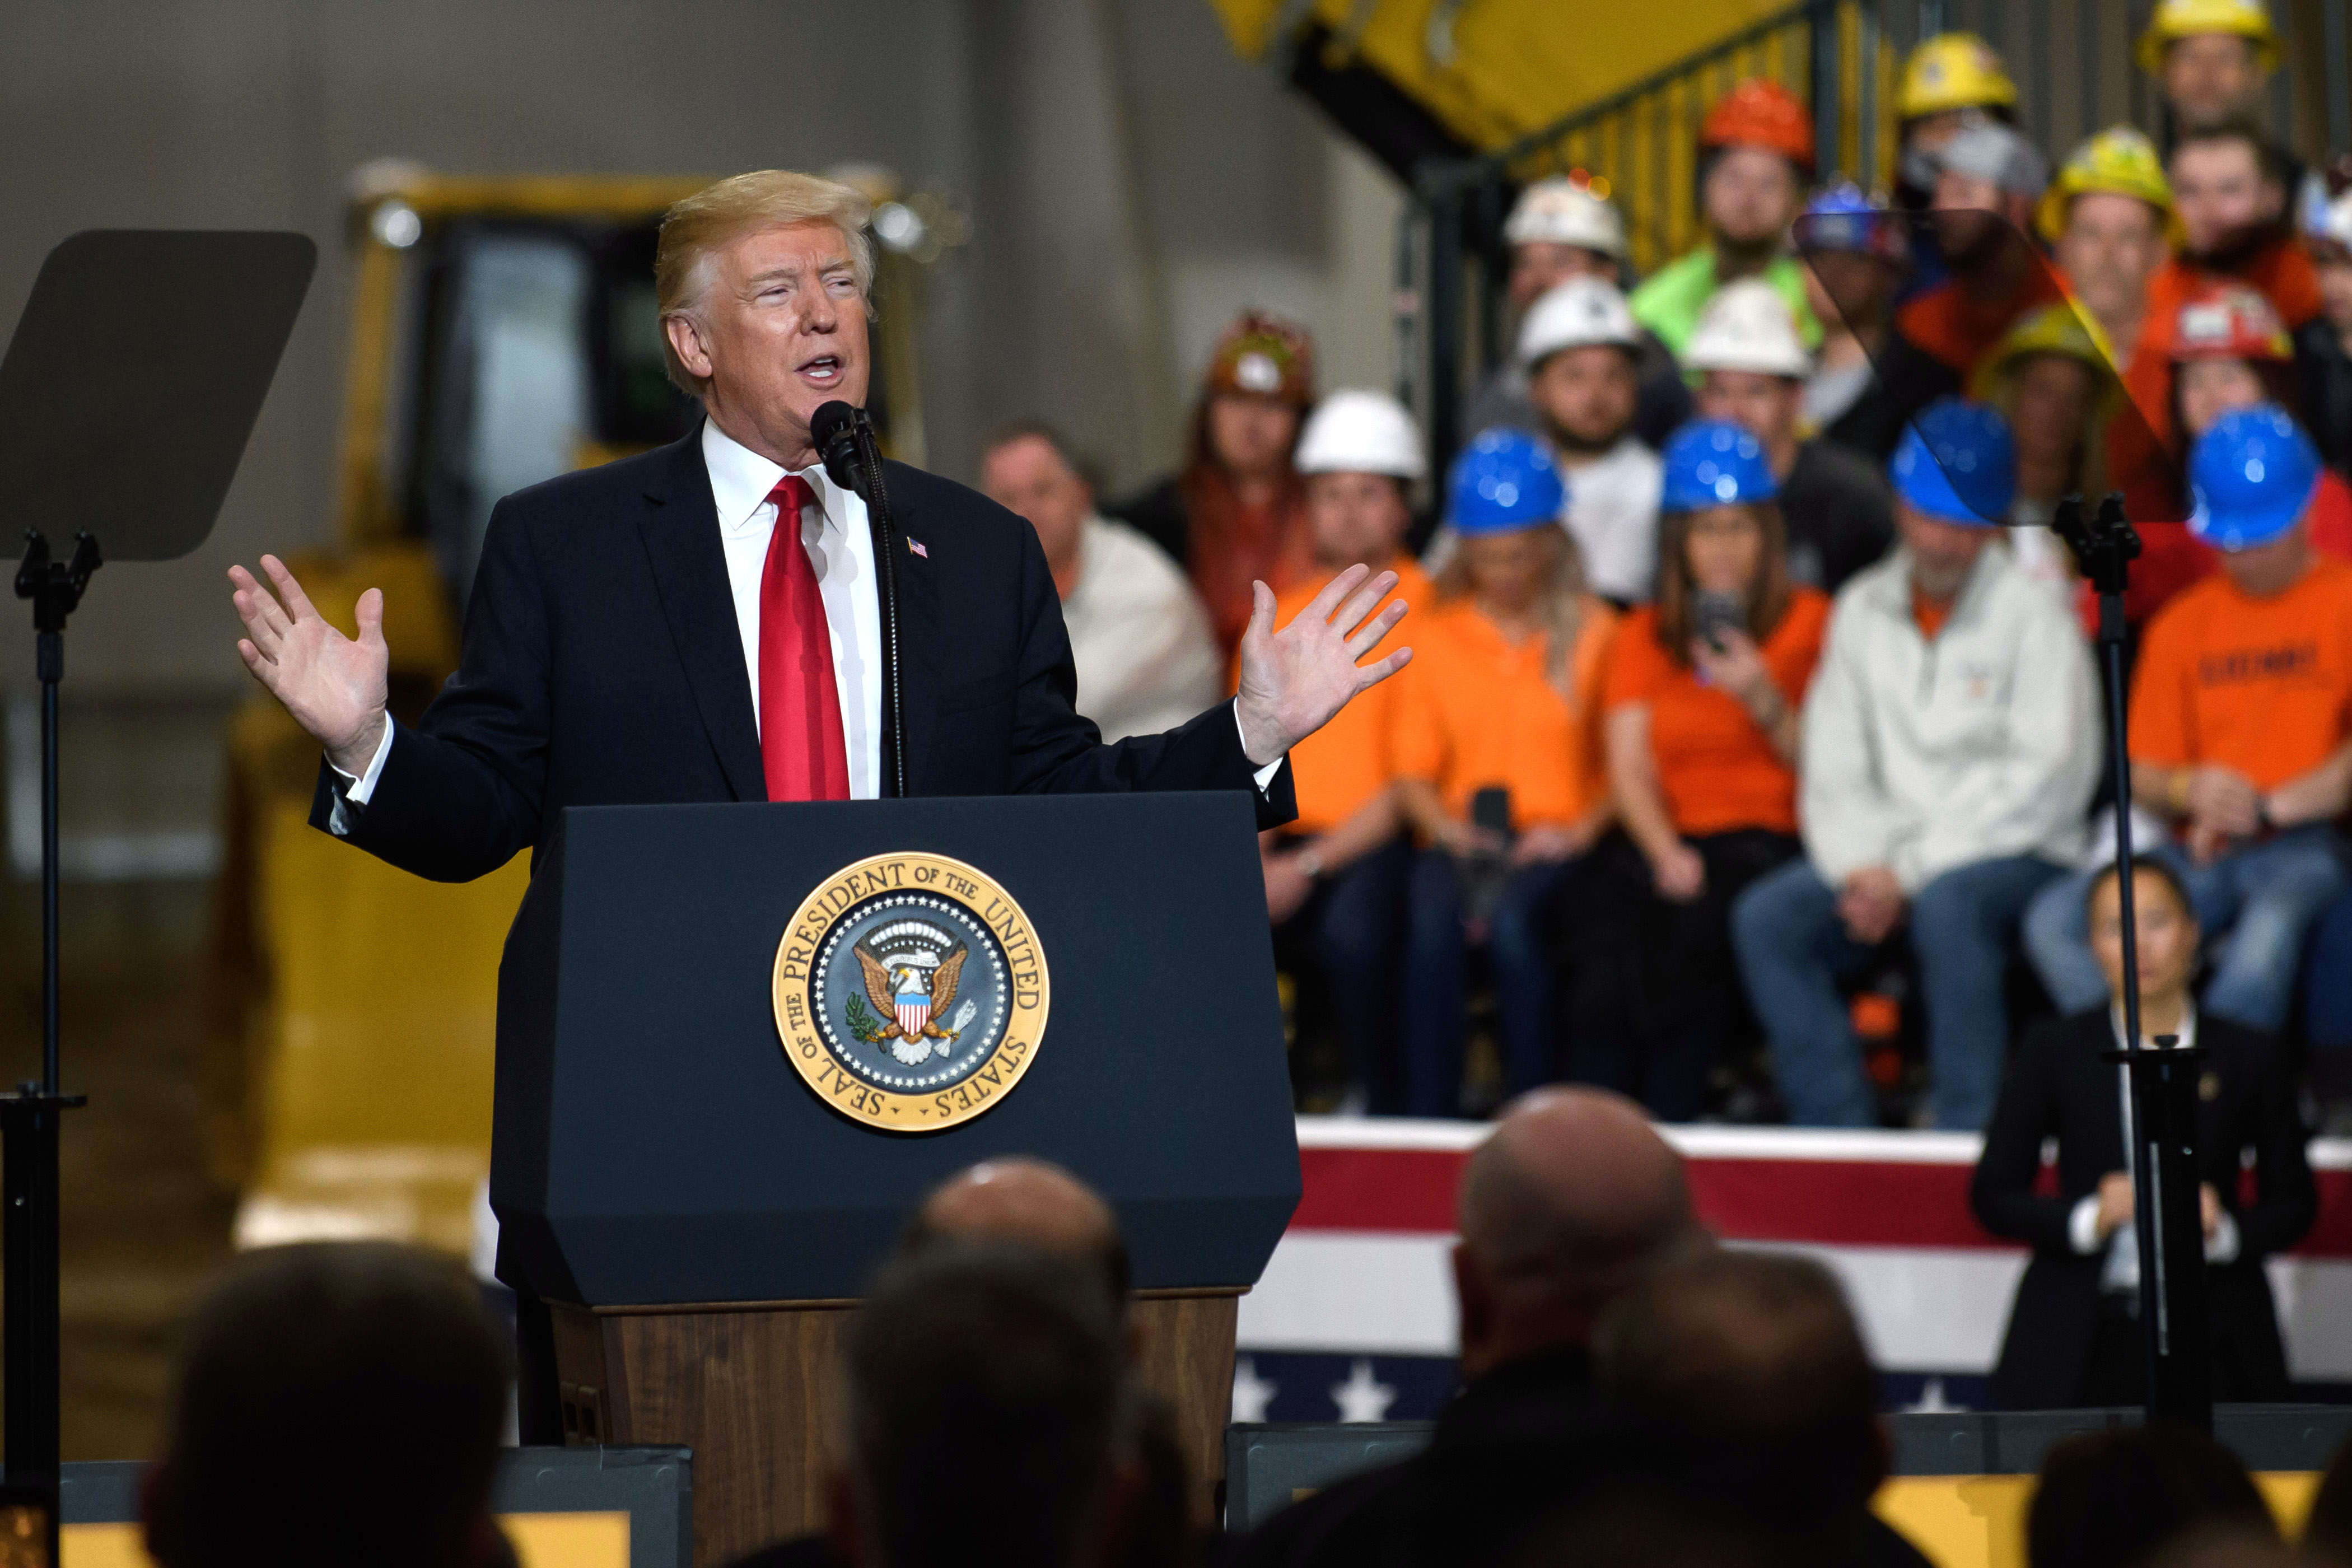 Trump speaks to a crowd gathered in Richfield, Ohio, on March 29.